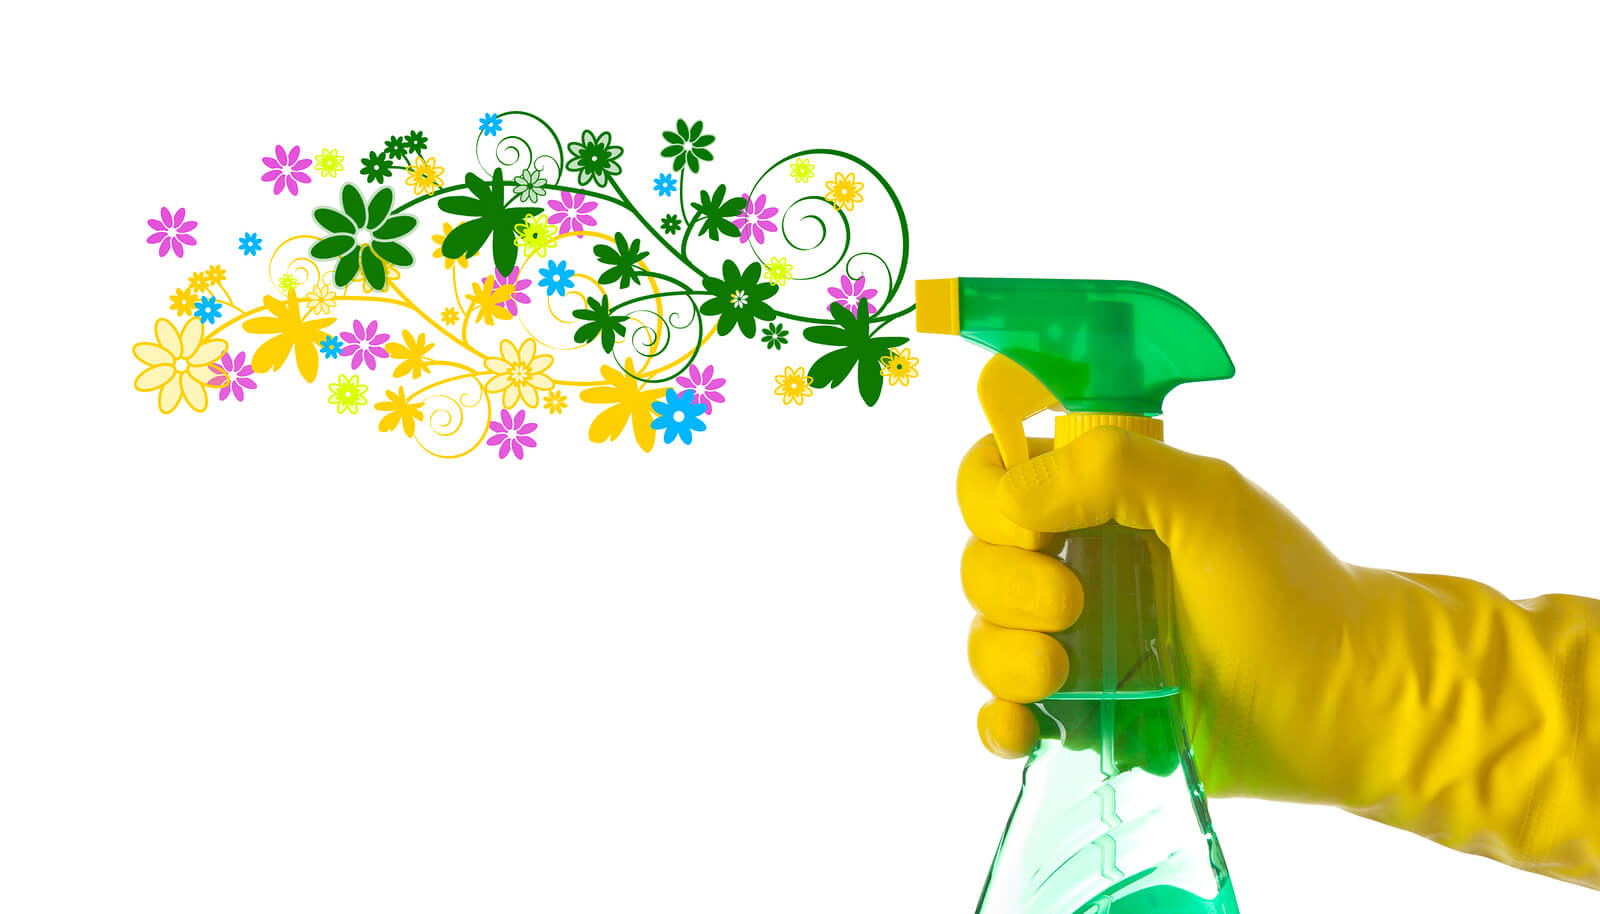 Spring Cleaning: The Added Benefits of a Clean Home